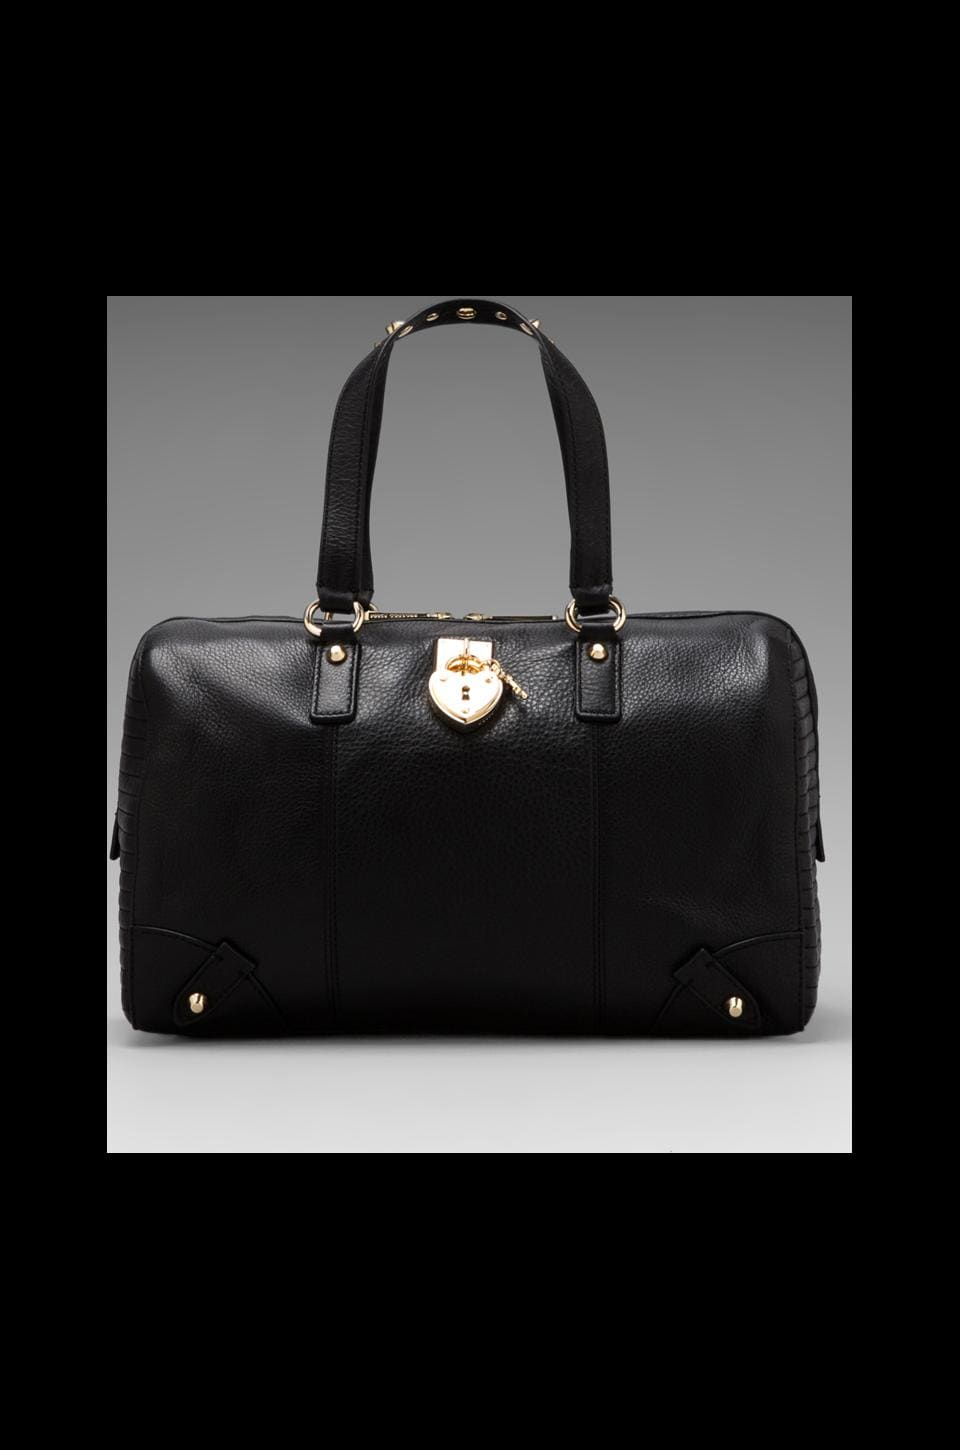 Juicy Couture Signature Leather Steffy in Black